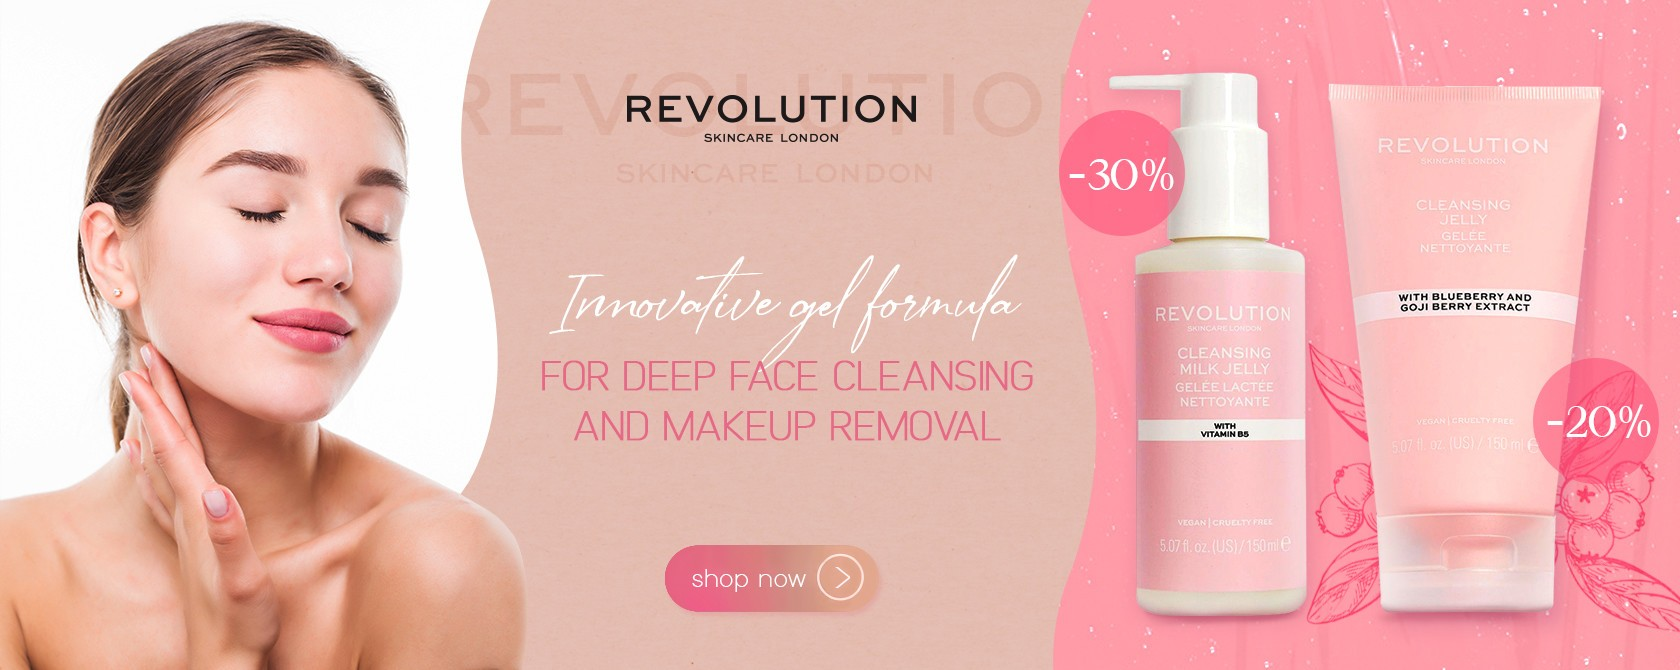 Revolution skincare products